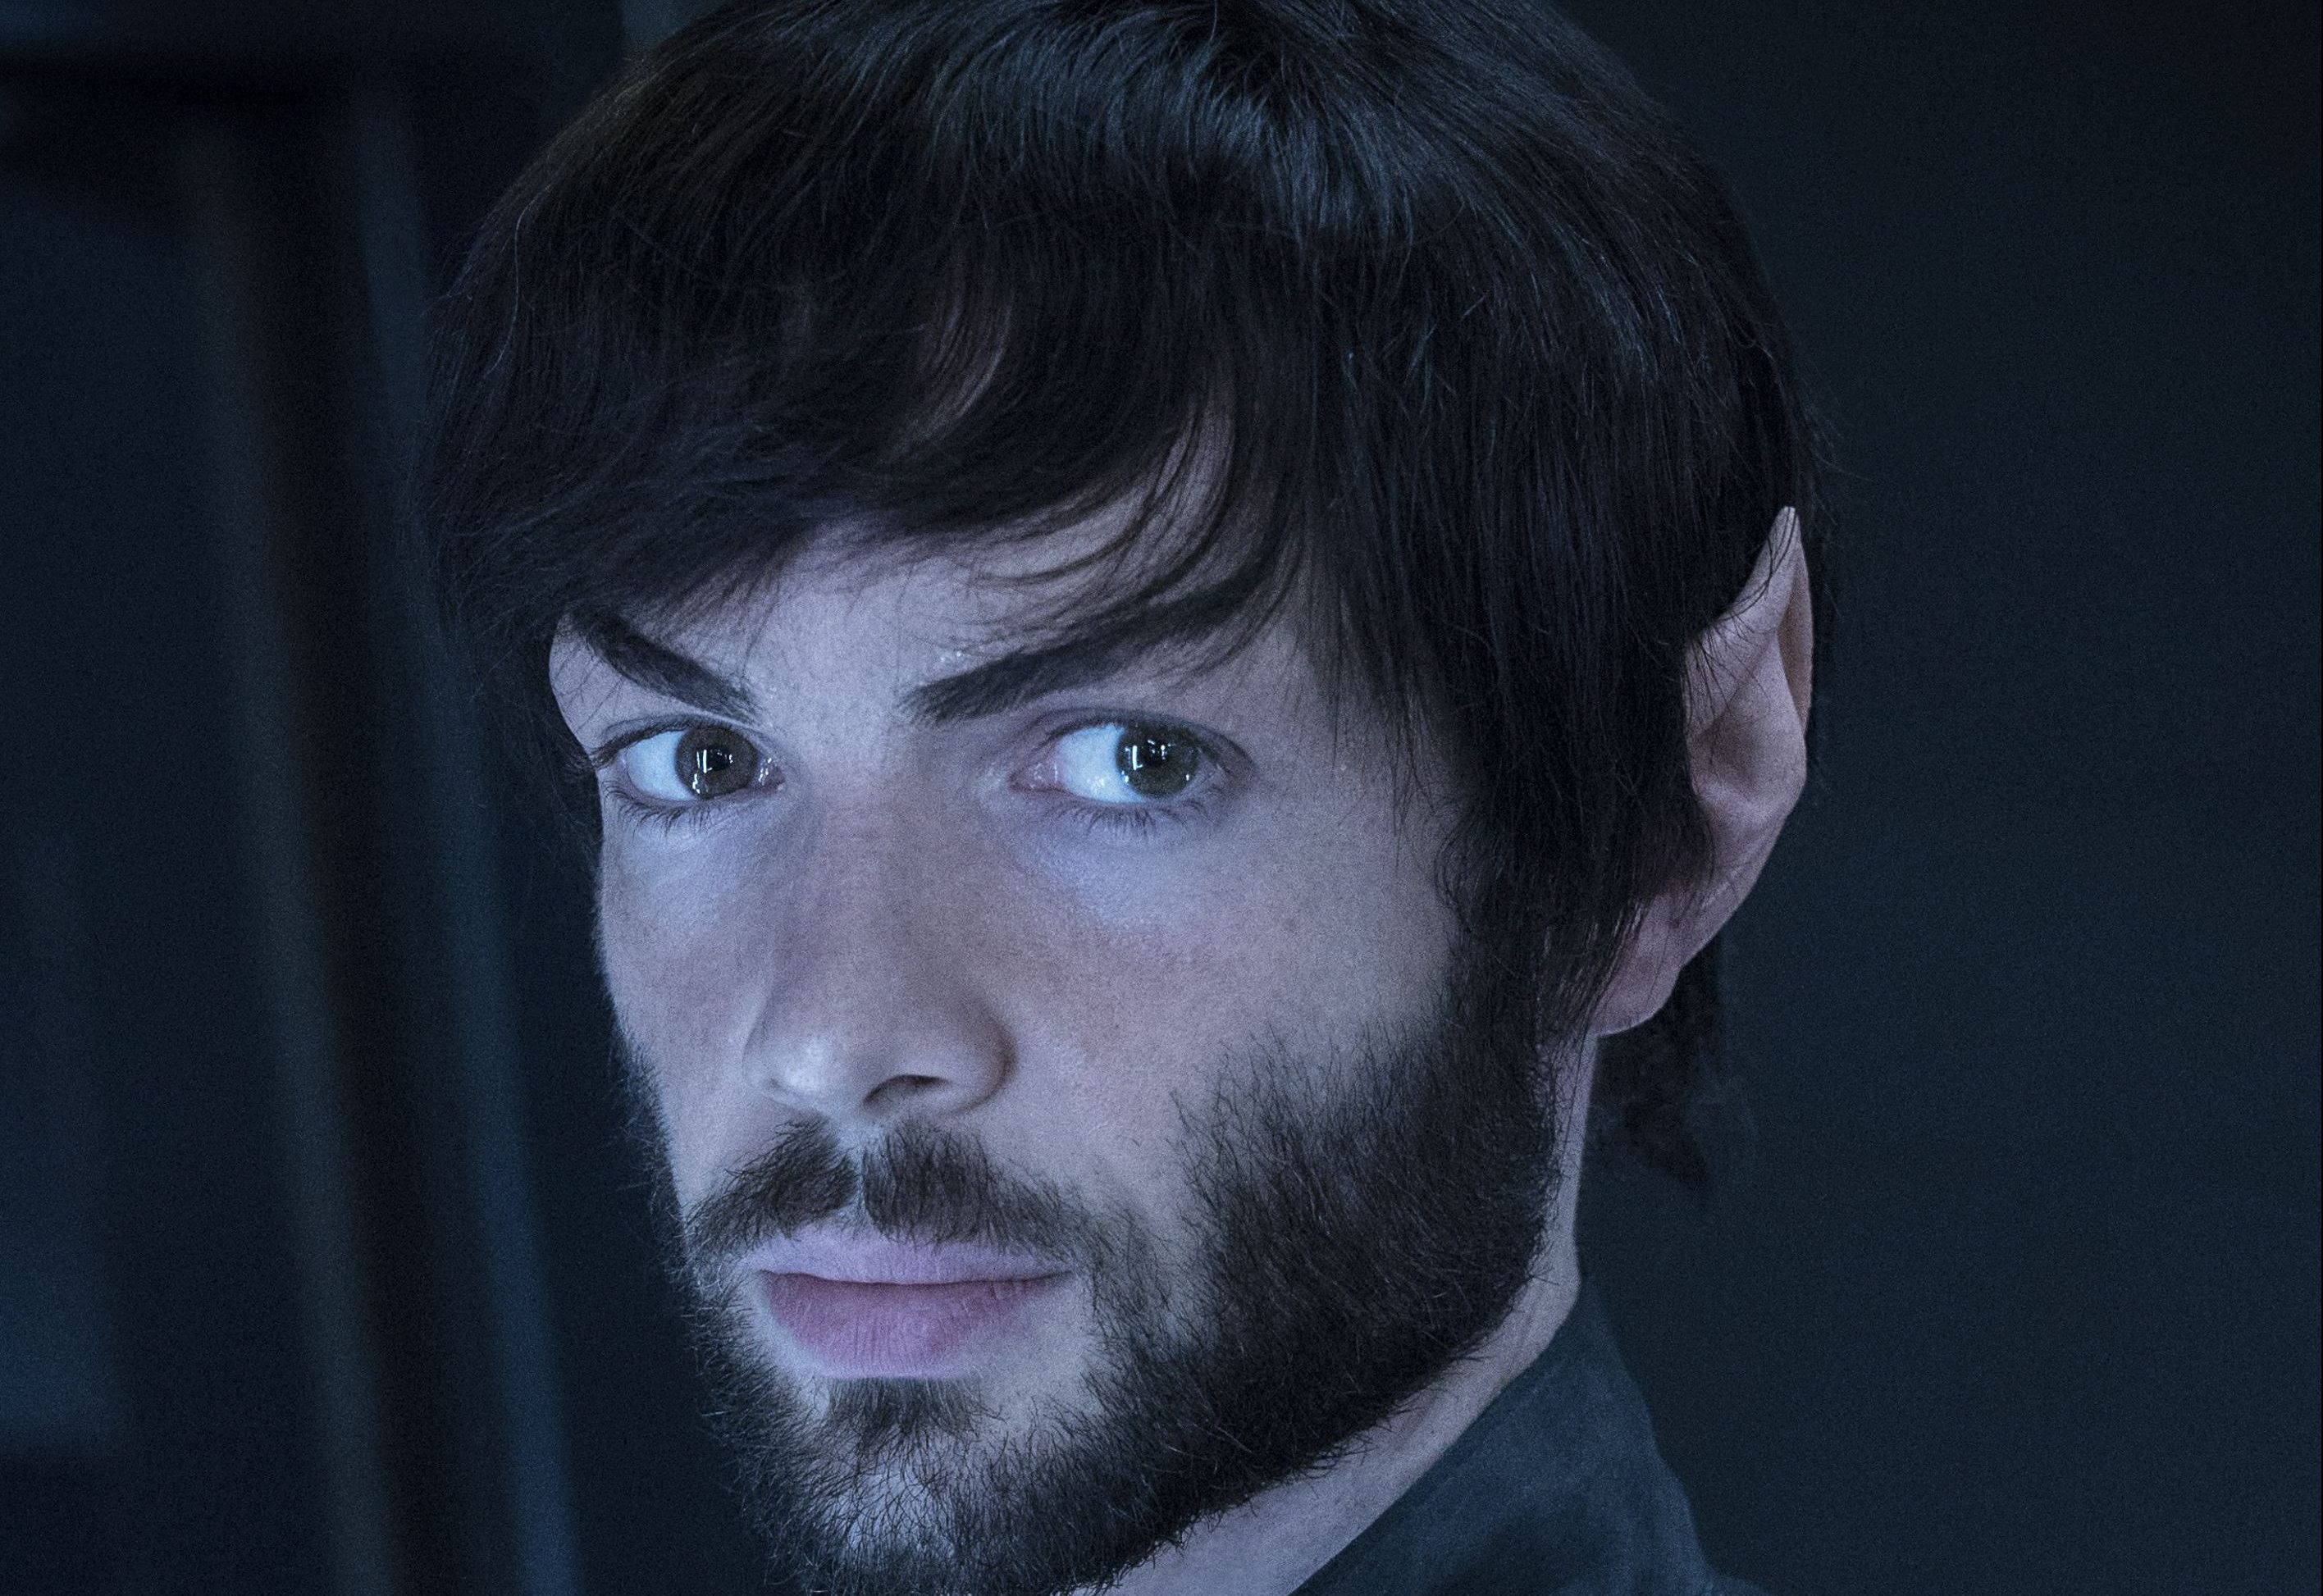 Star Trek Discovery's Spock 'will not be the character we know' in the original series